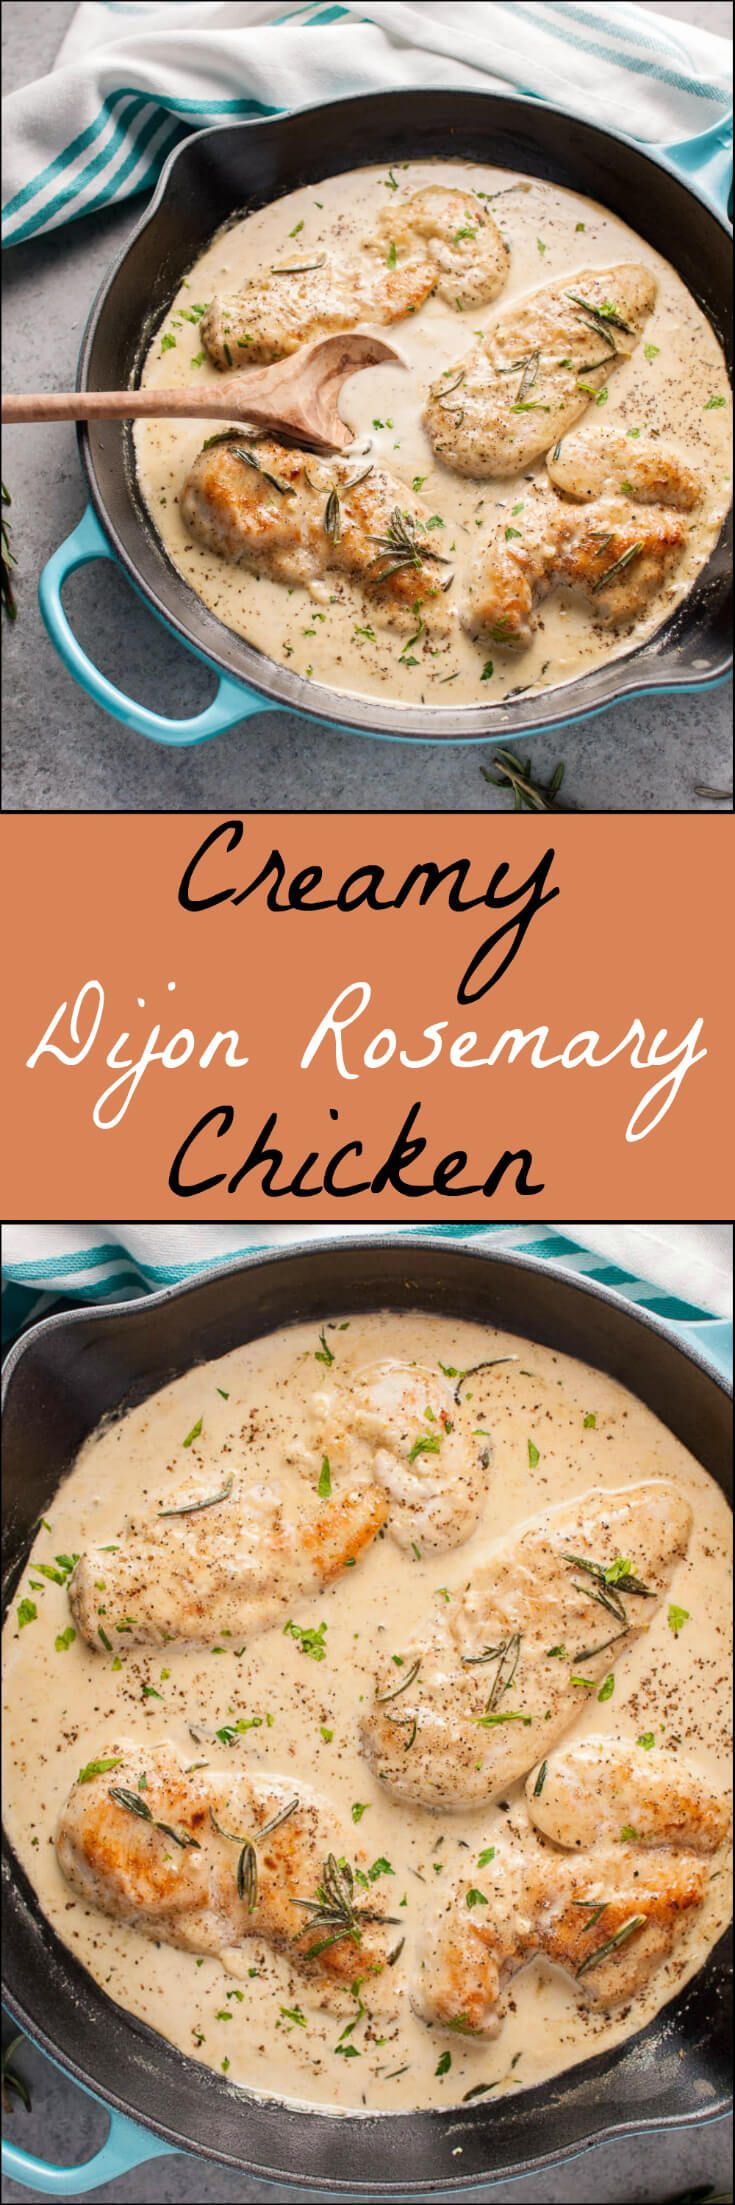 Easy fall cooking recipes